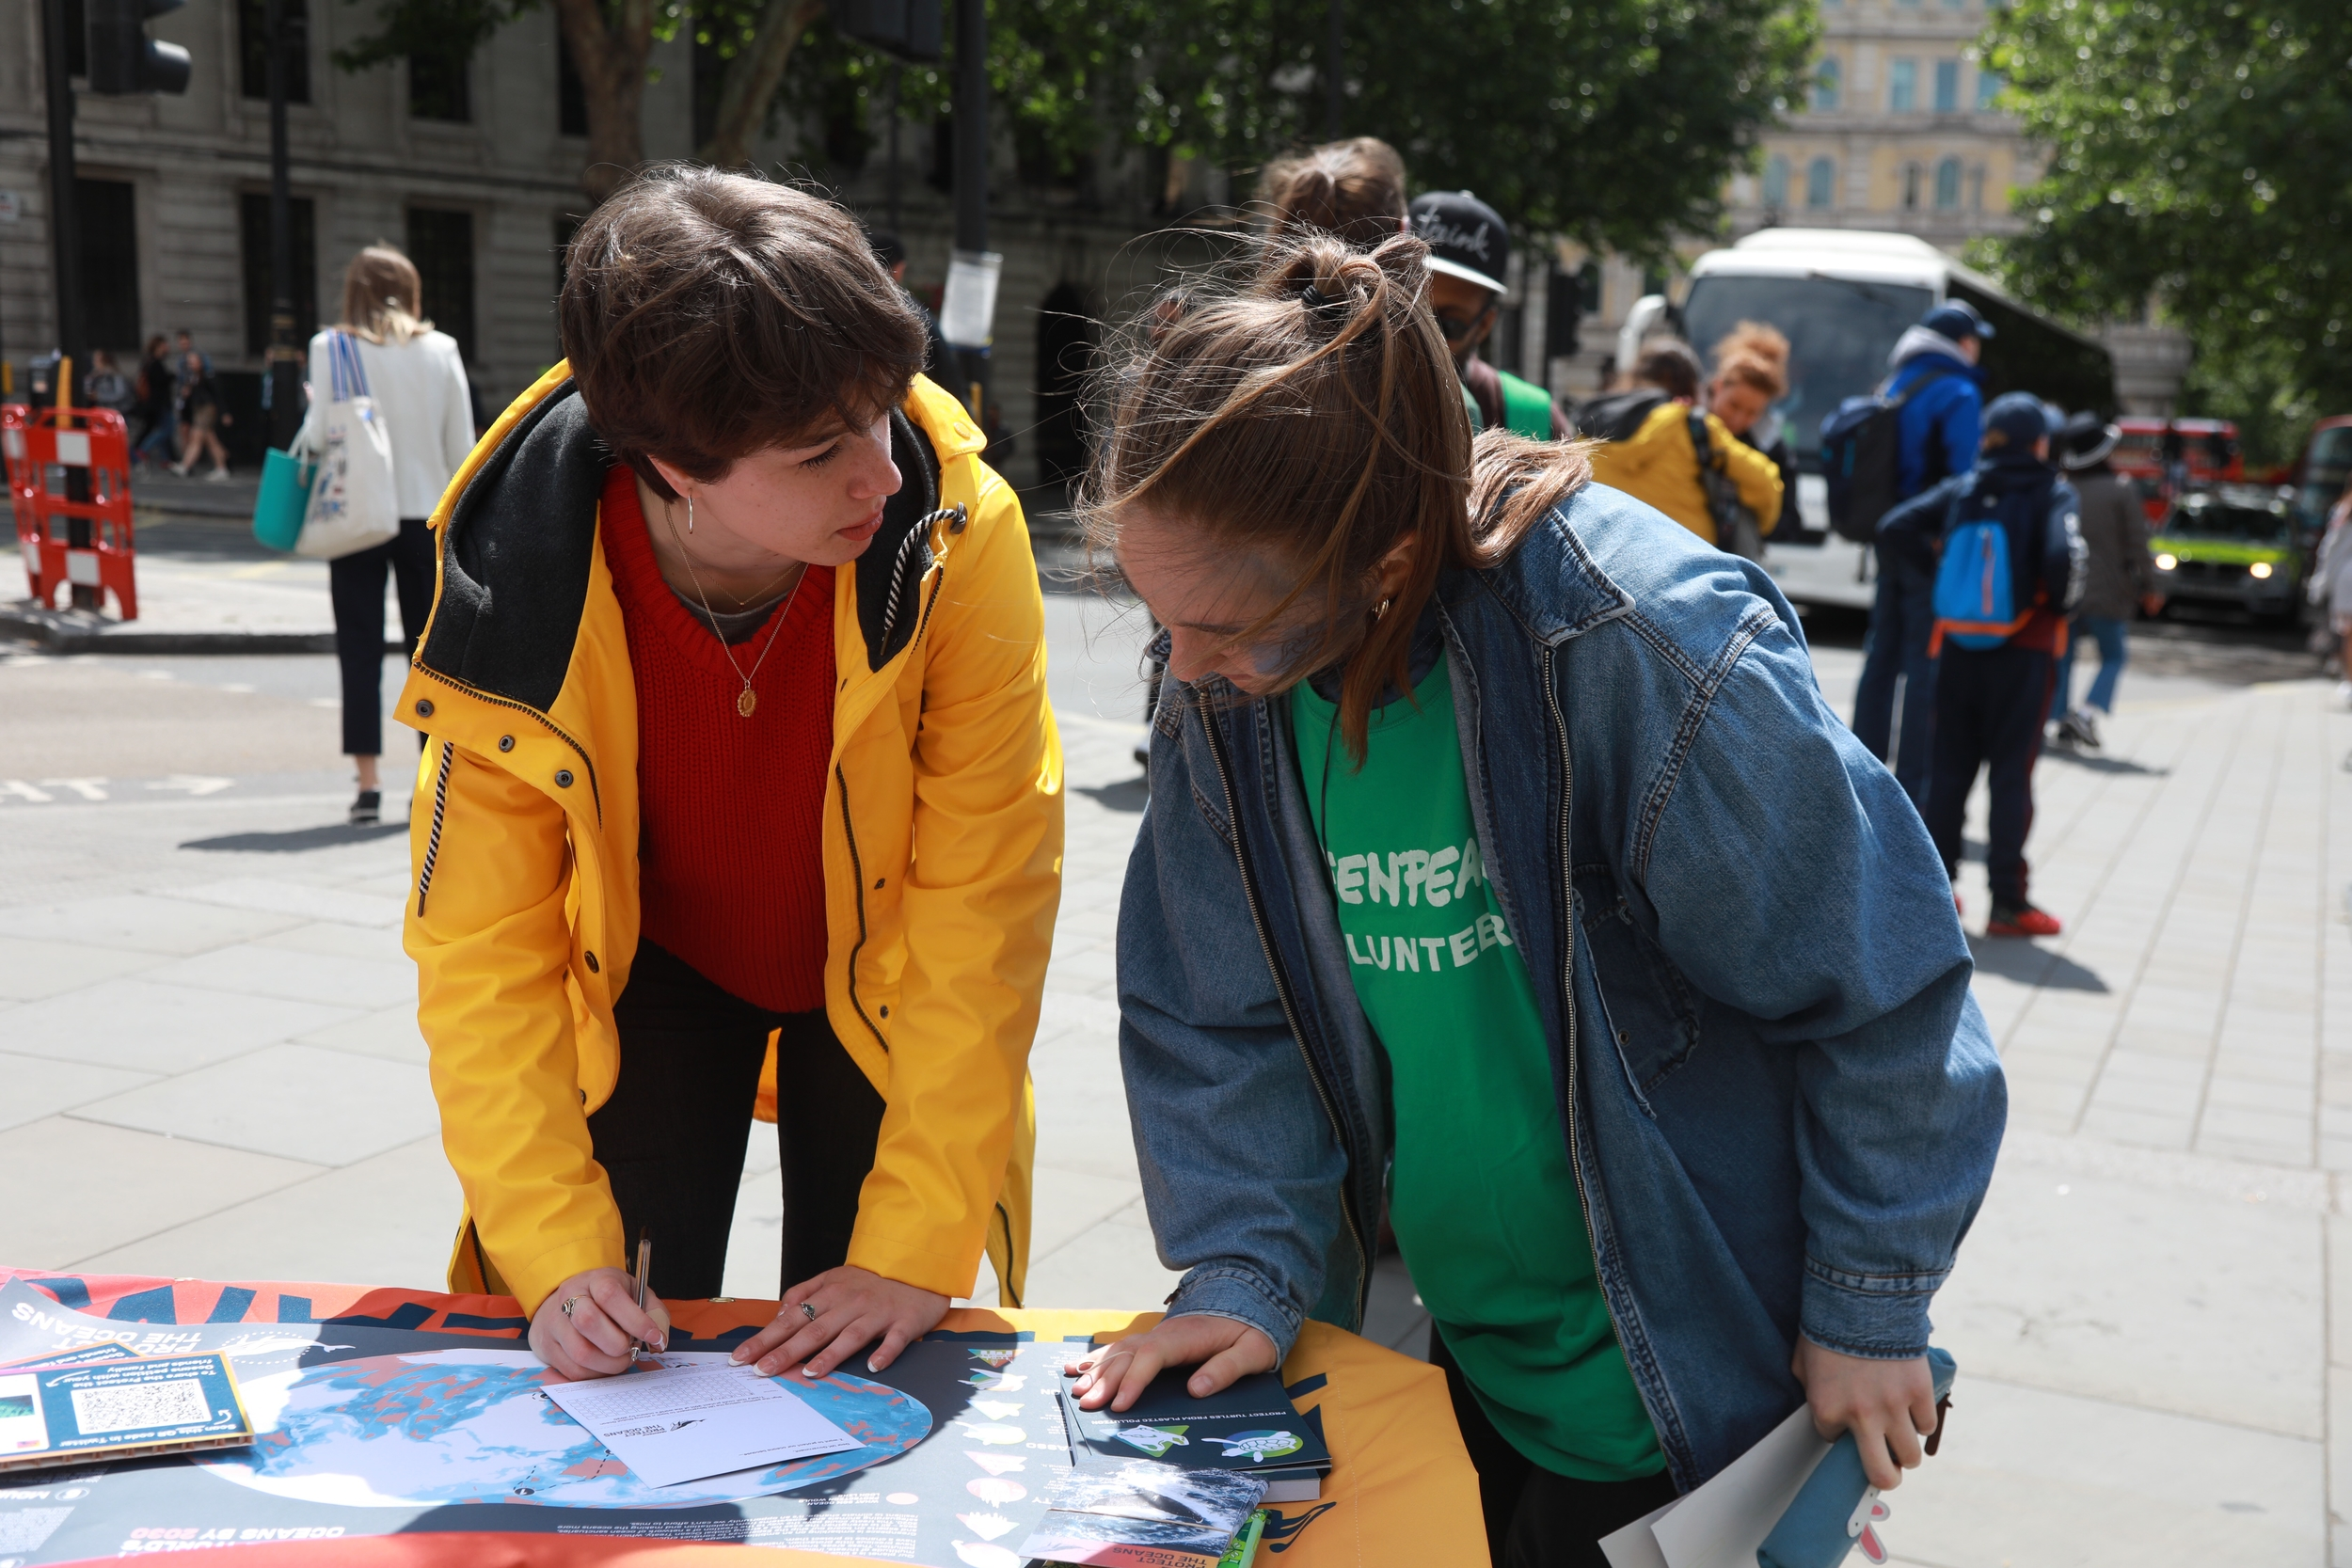 A local volunteer chatting to a member of the public at their local group street stall